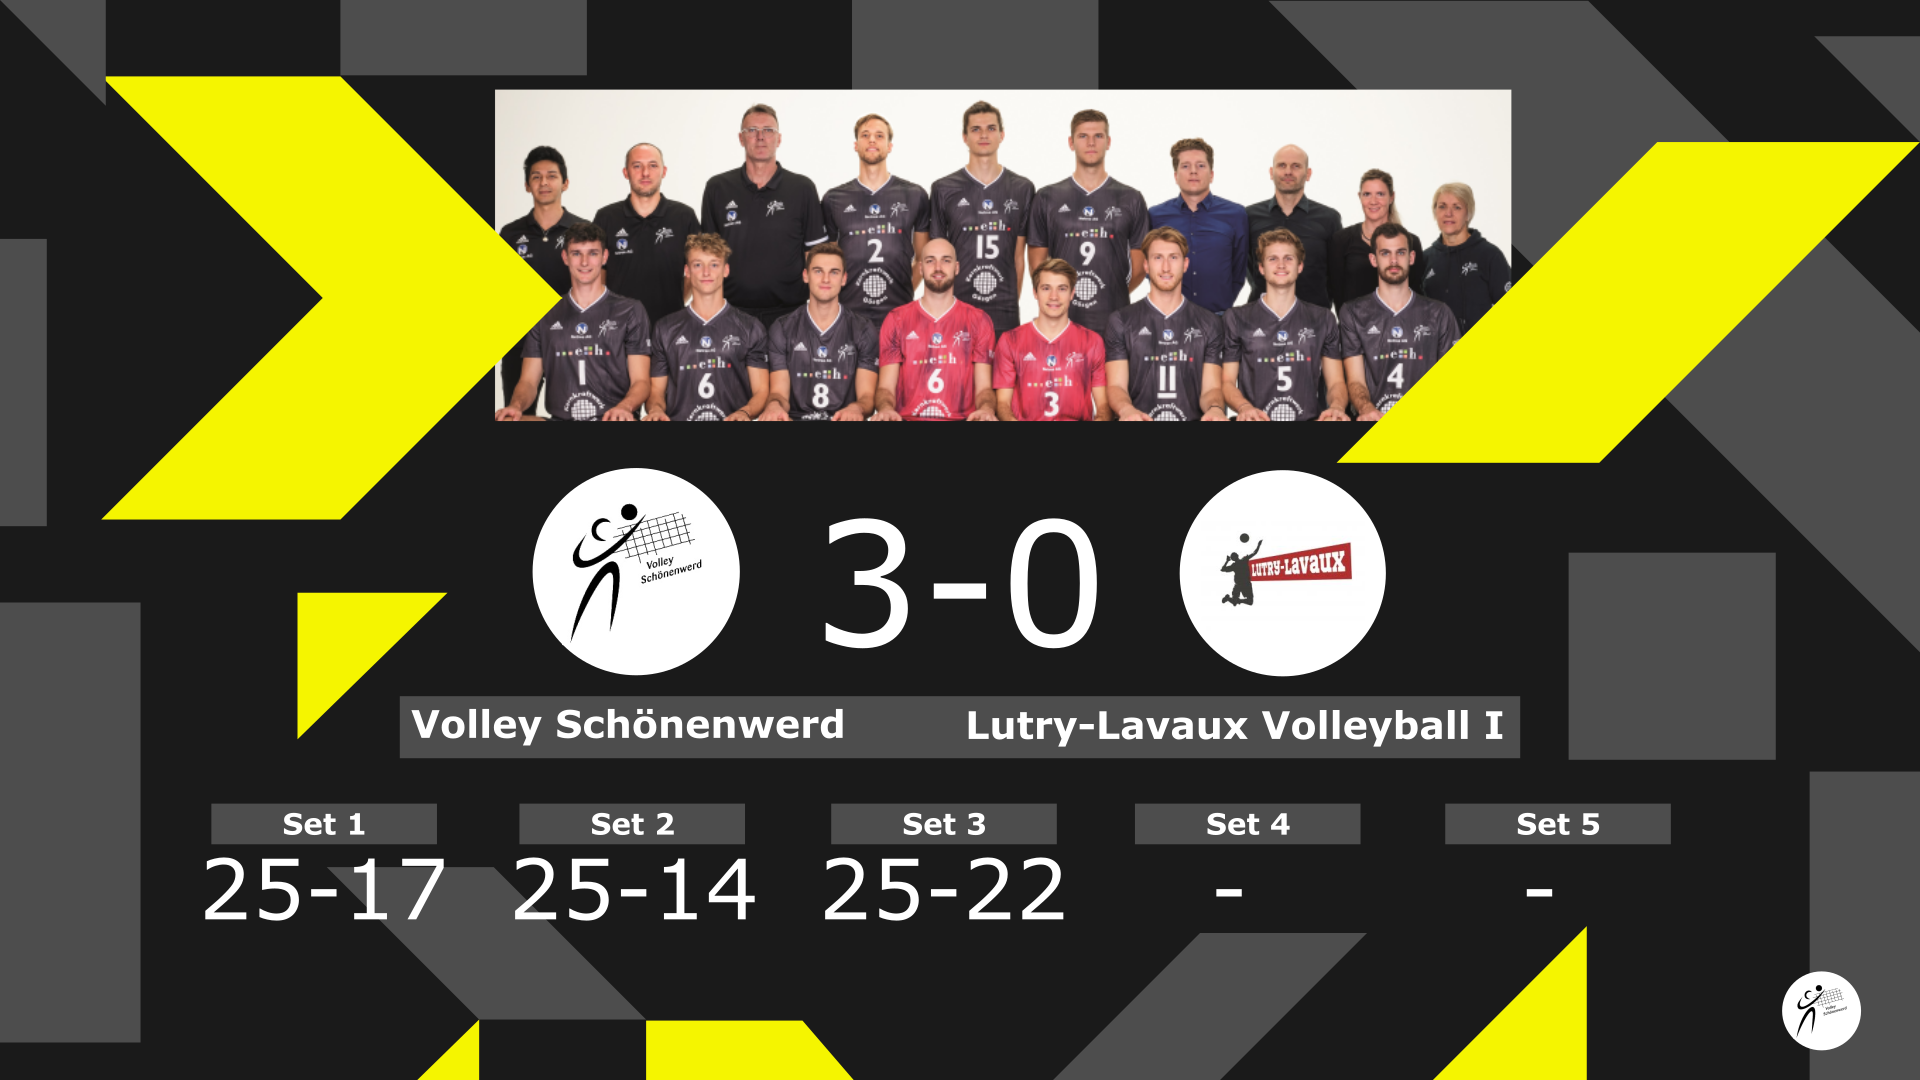 Volley Schönenwerd – Lutry-Lavaux Volleyball